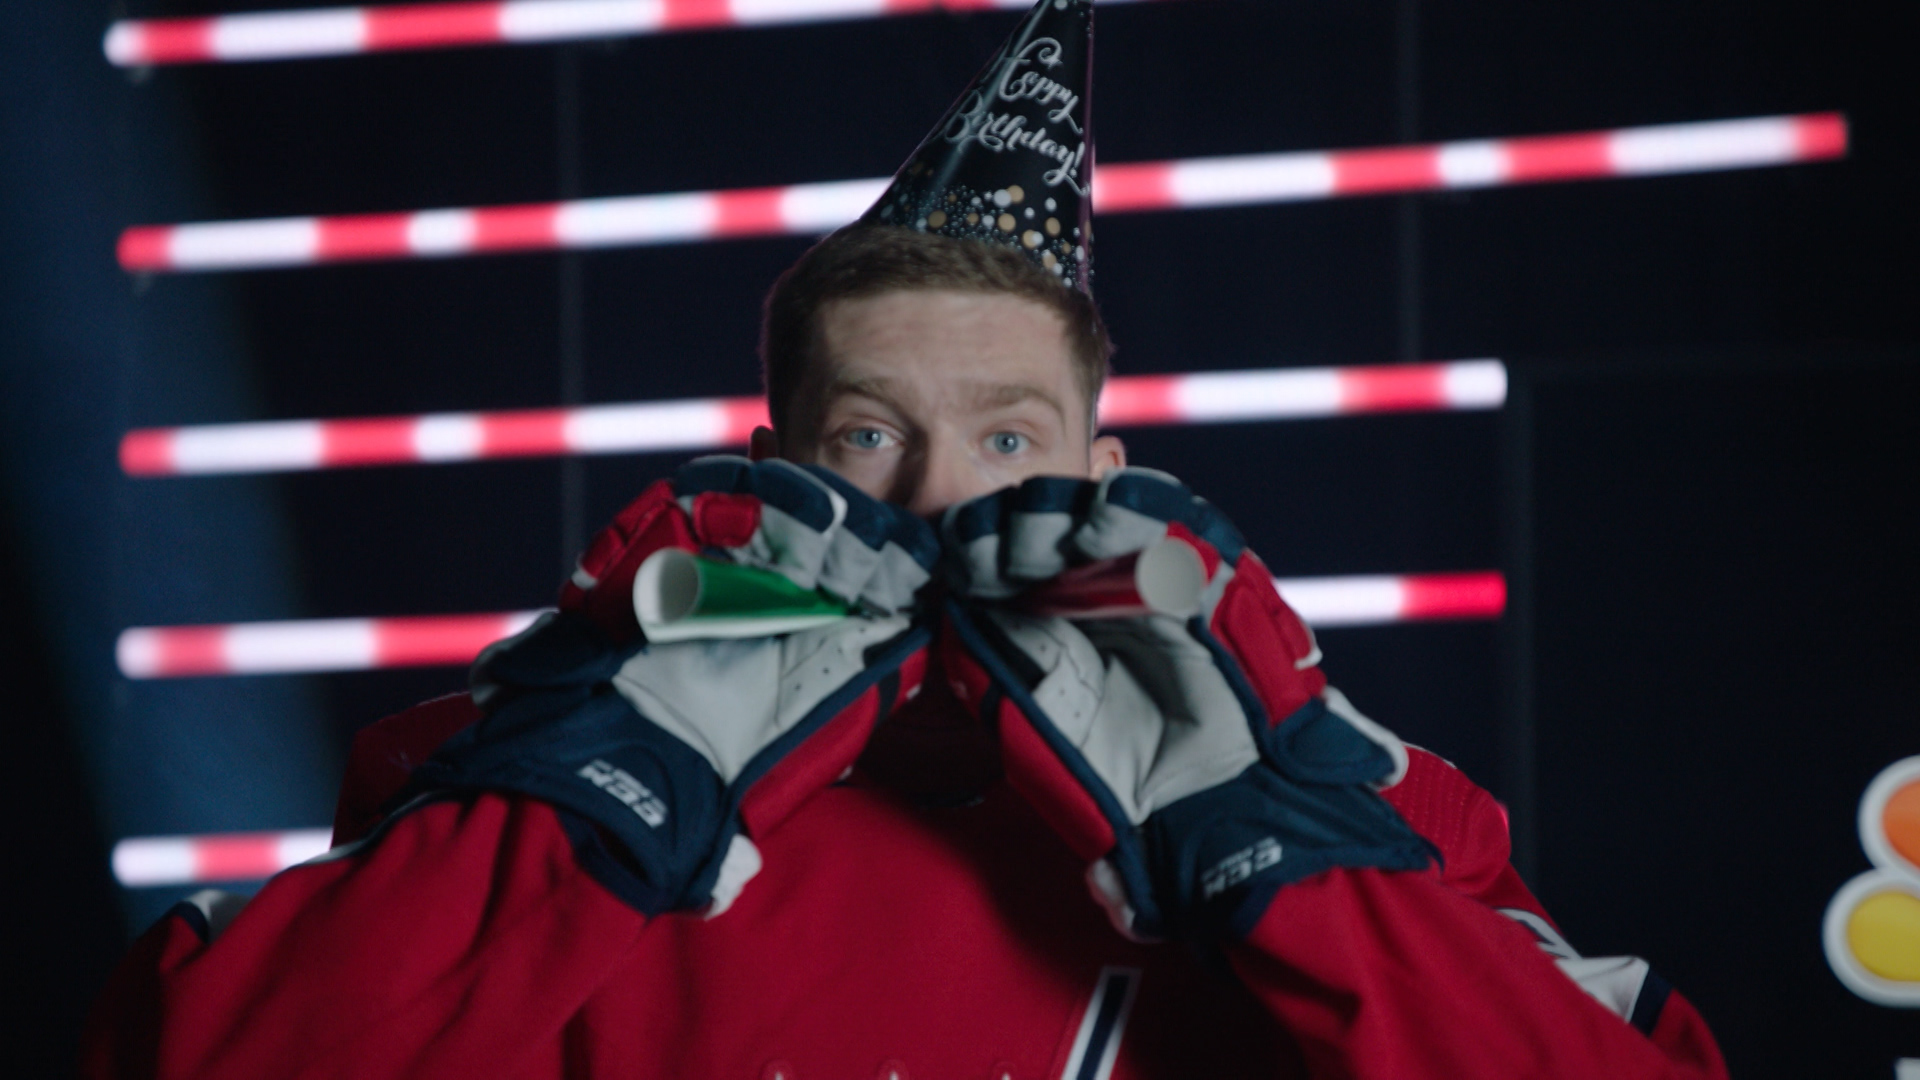 Evgeny Kuznetsov Mic'd Up: Kuzy praised for helping out the young guys